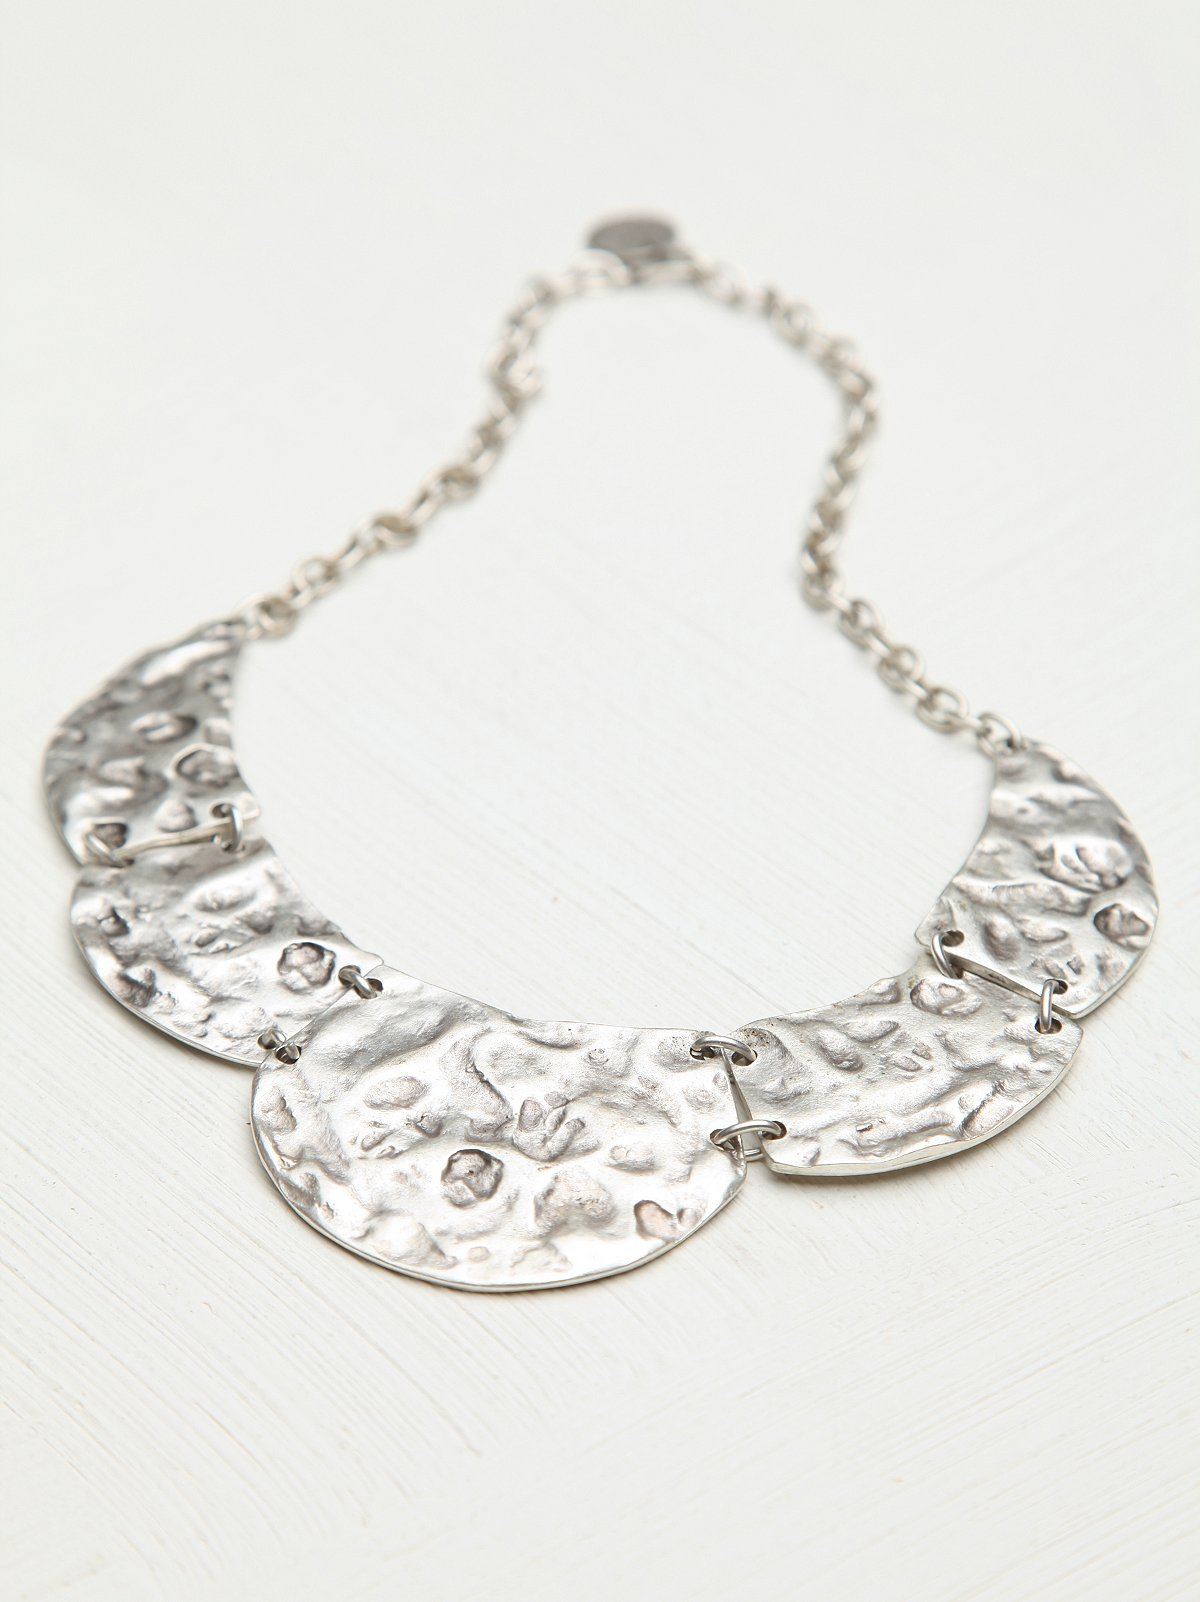 Tarnished Silver Collar